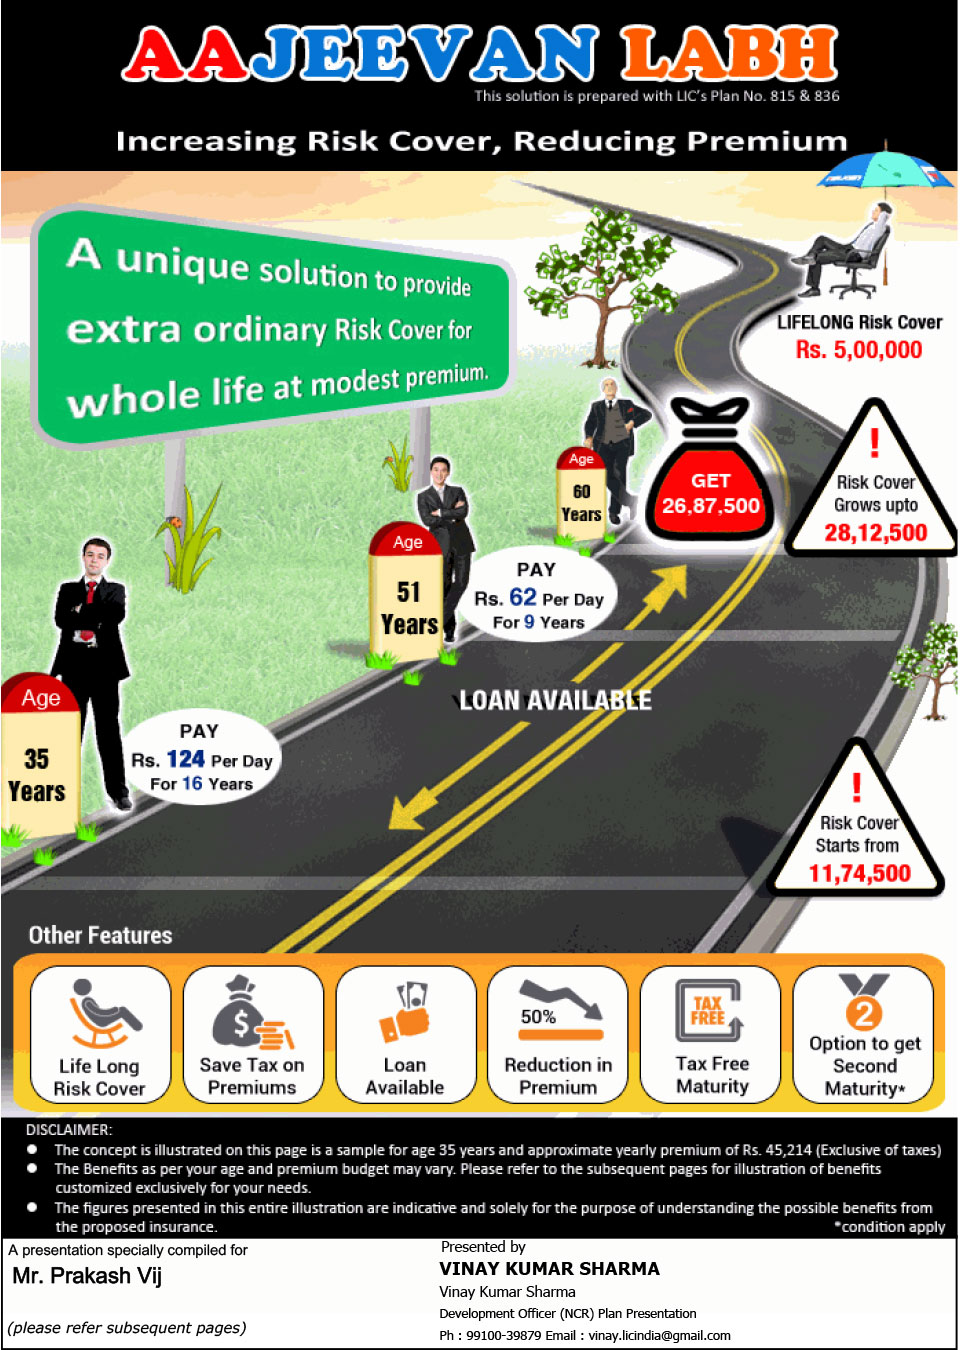 LIC AAJEEVAN LABH - Full infographics detail about LIC AAJEEVAN LABH